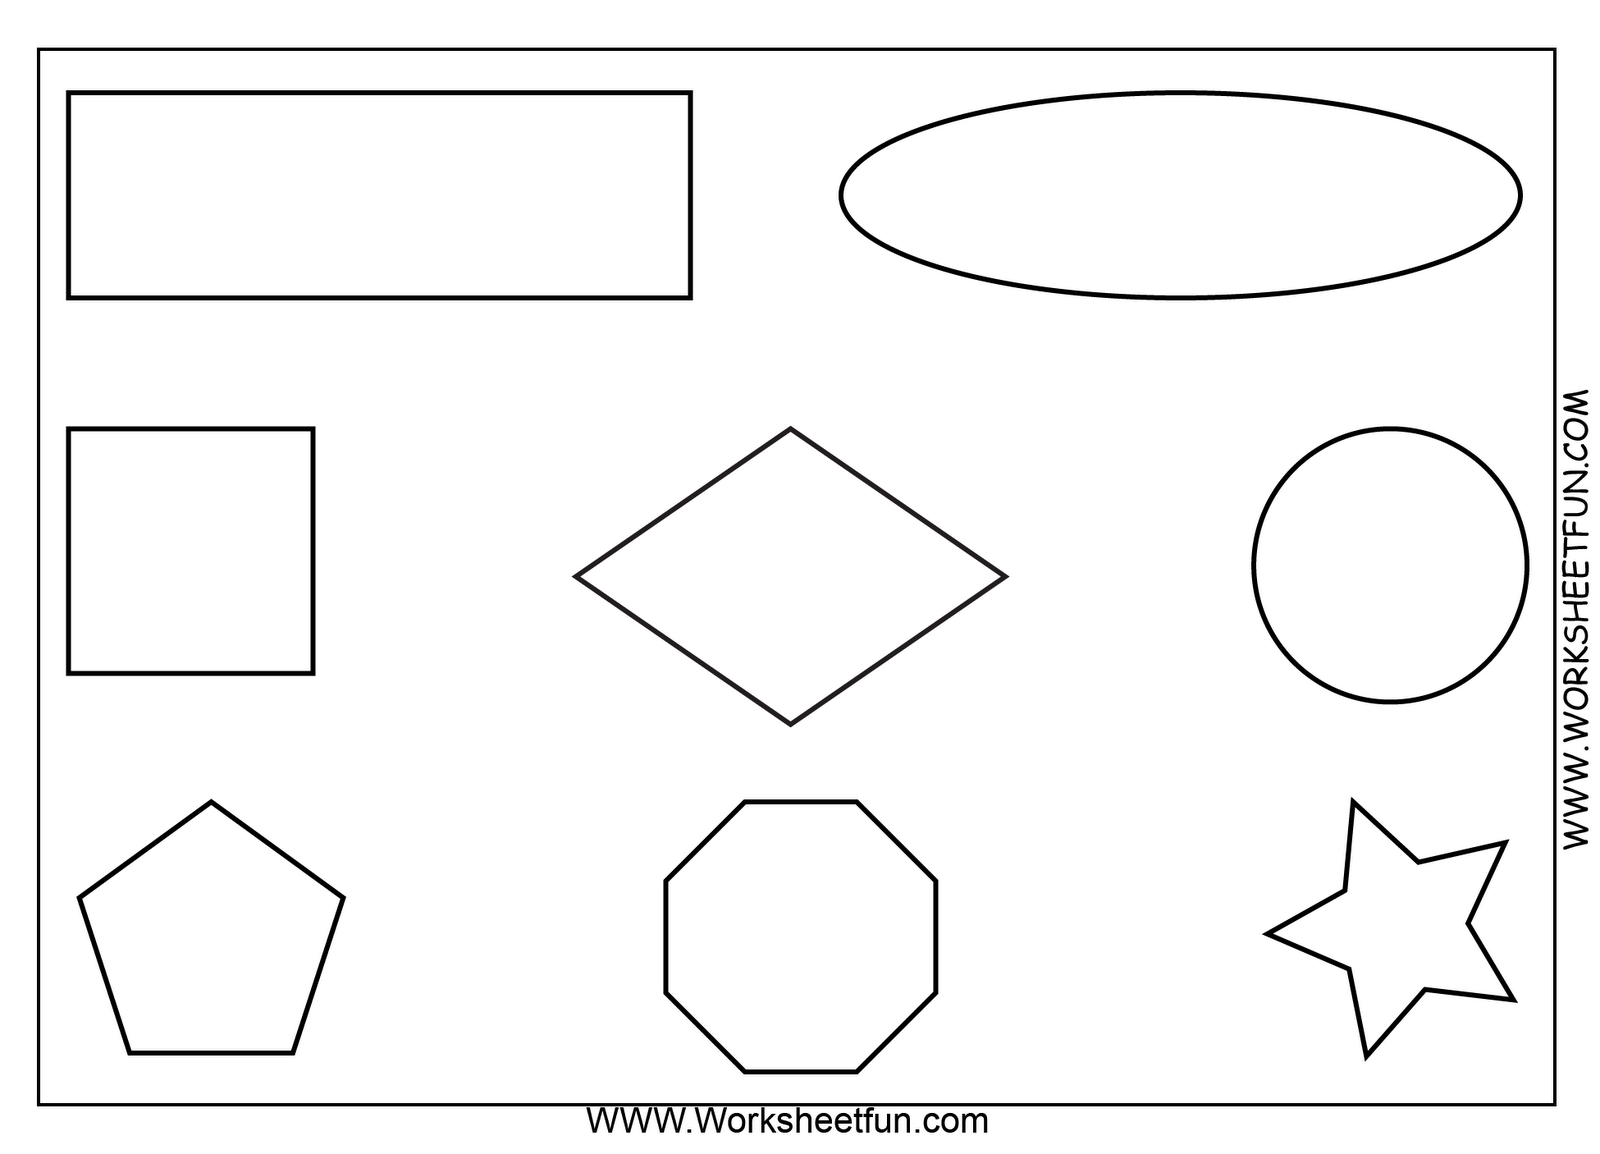 Free Printable Math Worksheets. Use As An Oral Direction Exam. Ex - Free Printable Shapes Worksheets